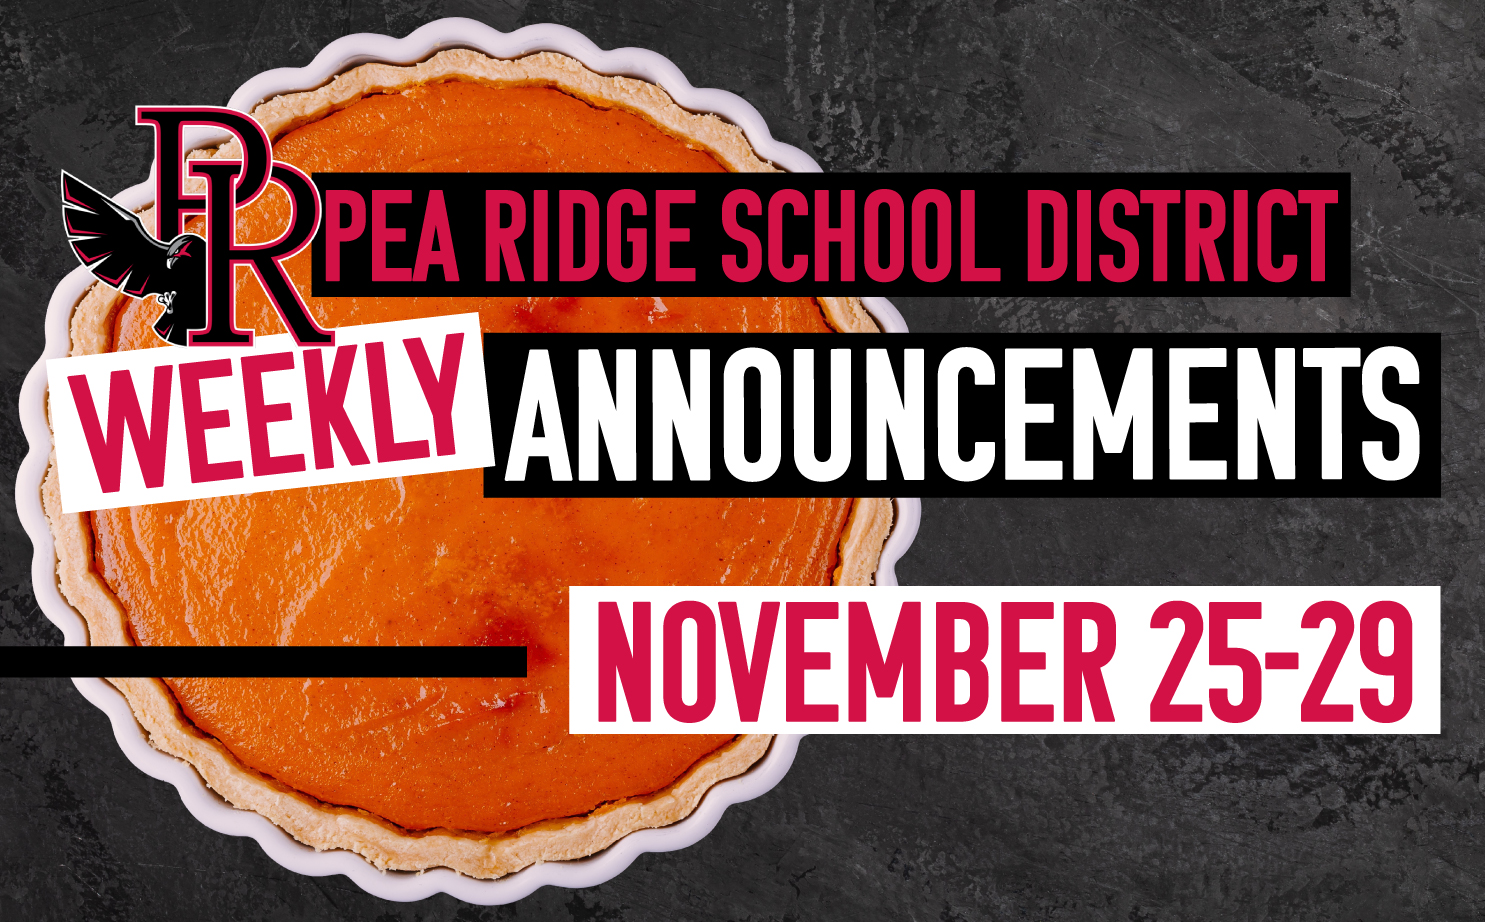 Weekly Announcements Nov. 25-29